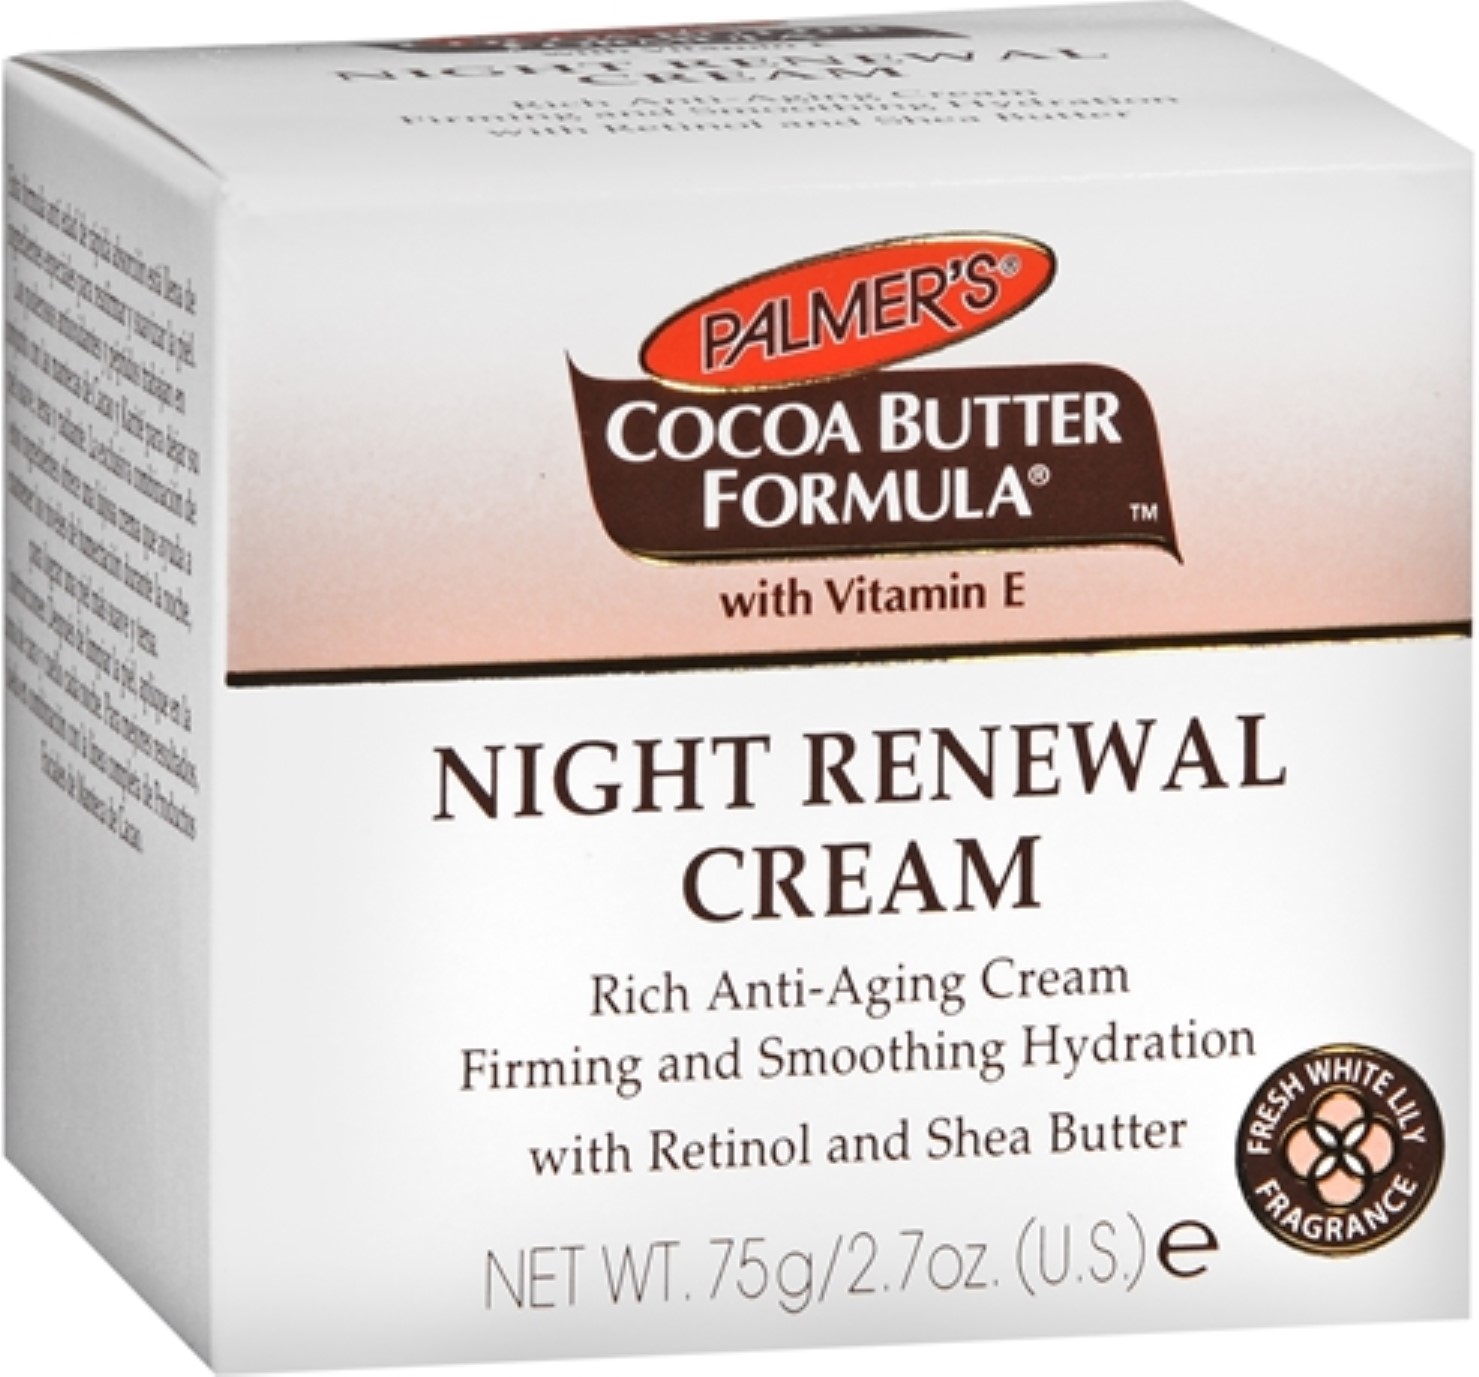 Palmer's Cocoa Butter Formula Night Renewal Cream 2.70 oz (Pack of 2)